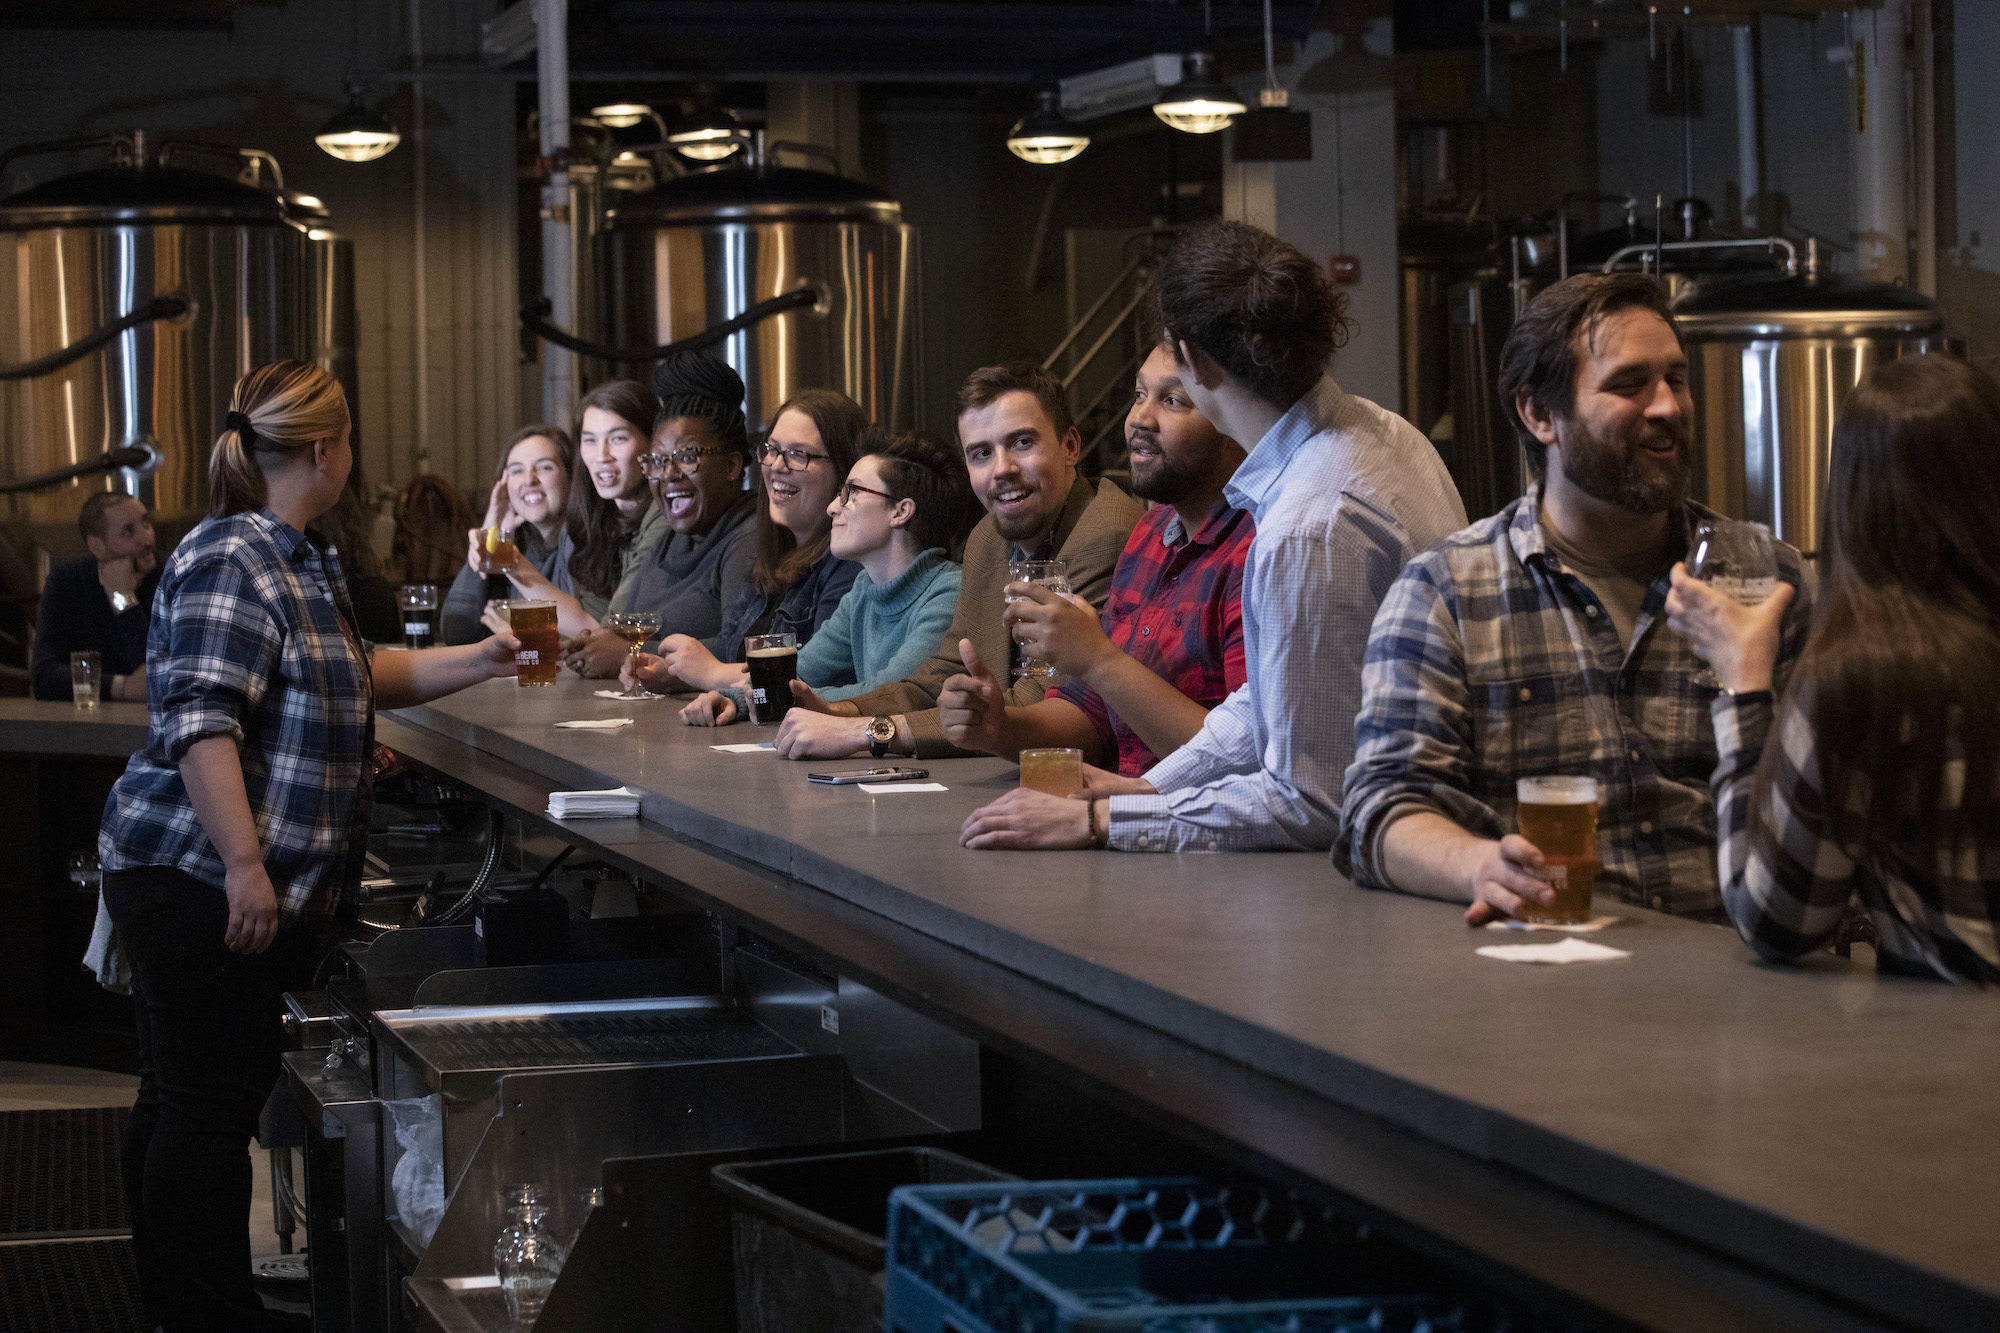 A photo of patrons enjoying drinks and conversations at the bar in Red Bear